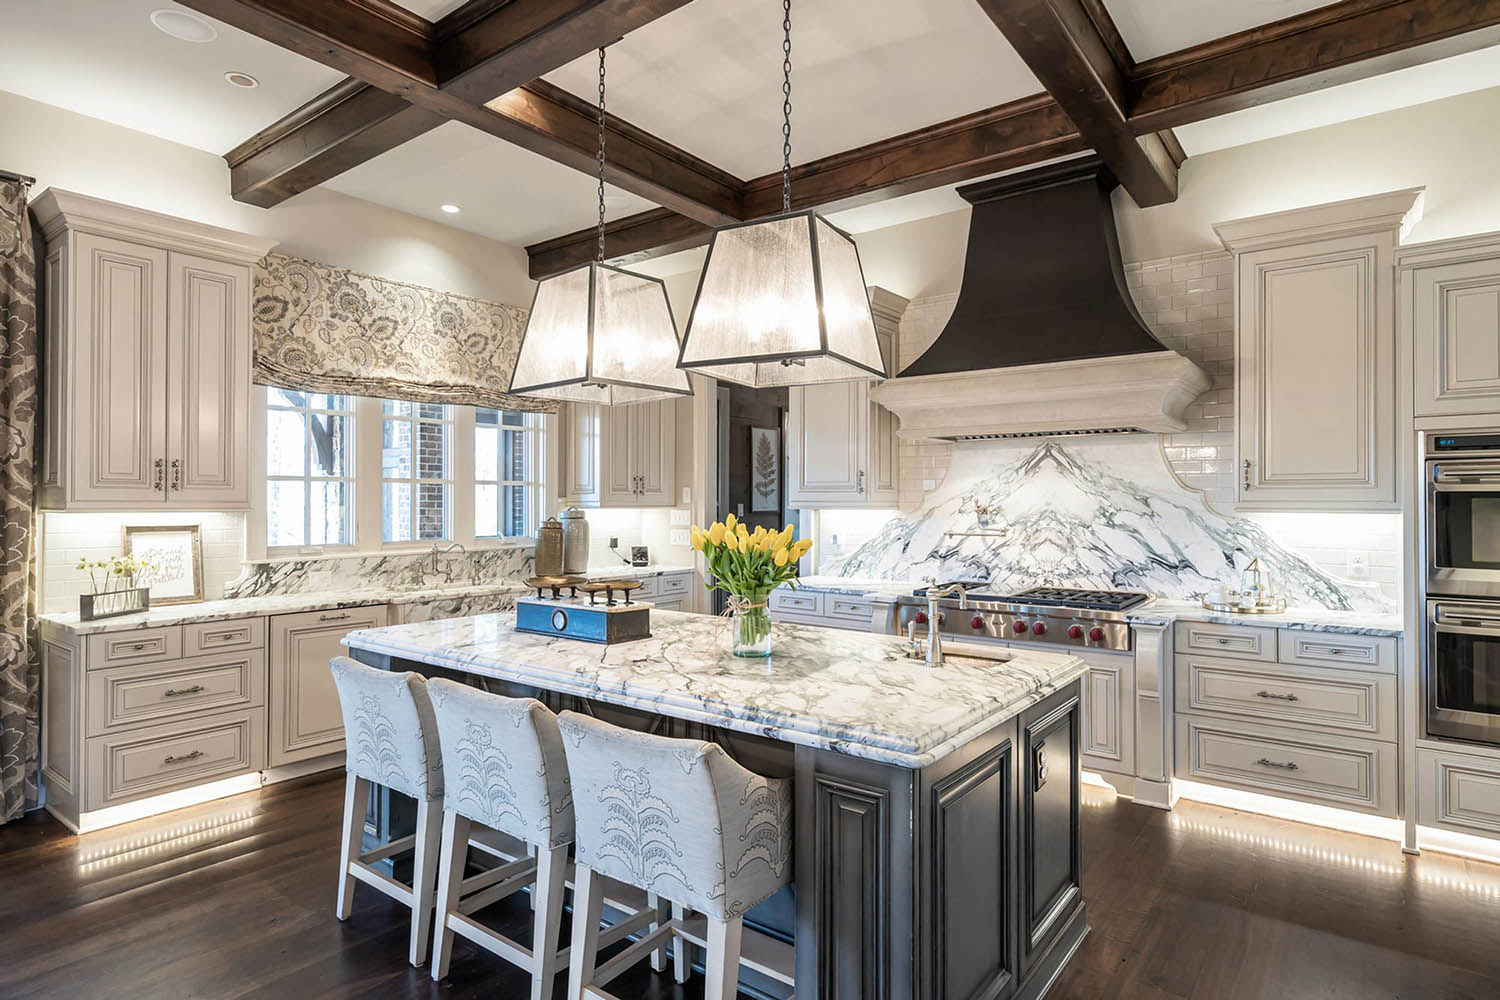 Luury kitchen with dark wood coffered ceiling beams lots of marble